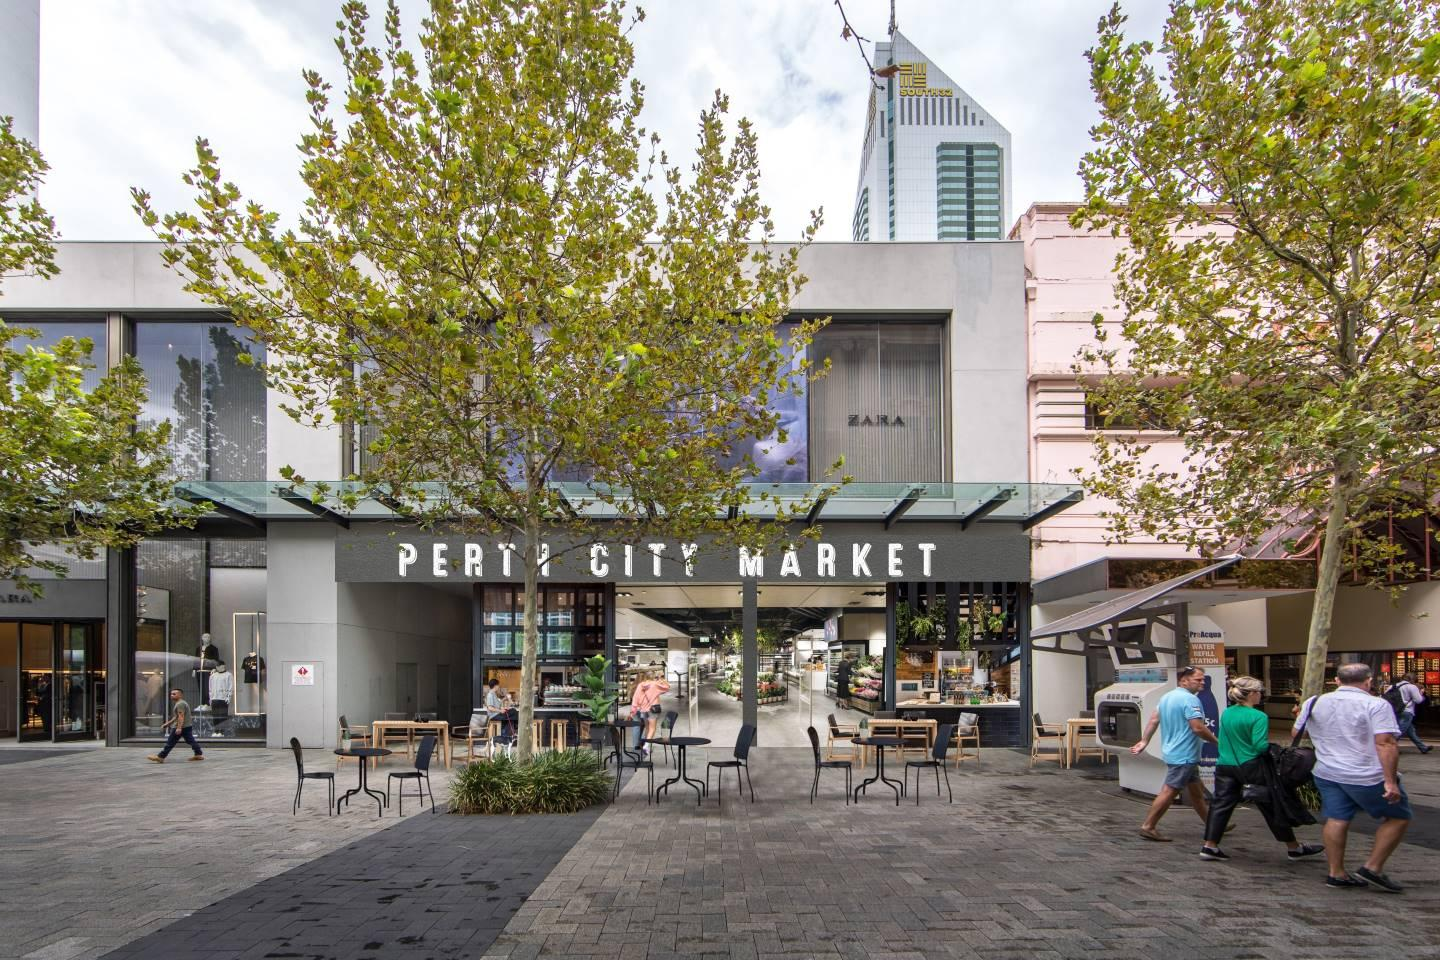 Space to grow for grassroots retail